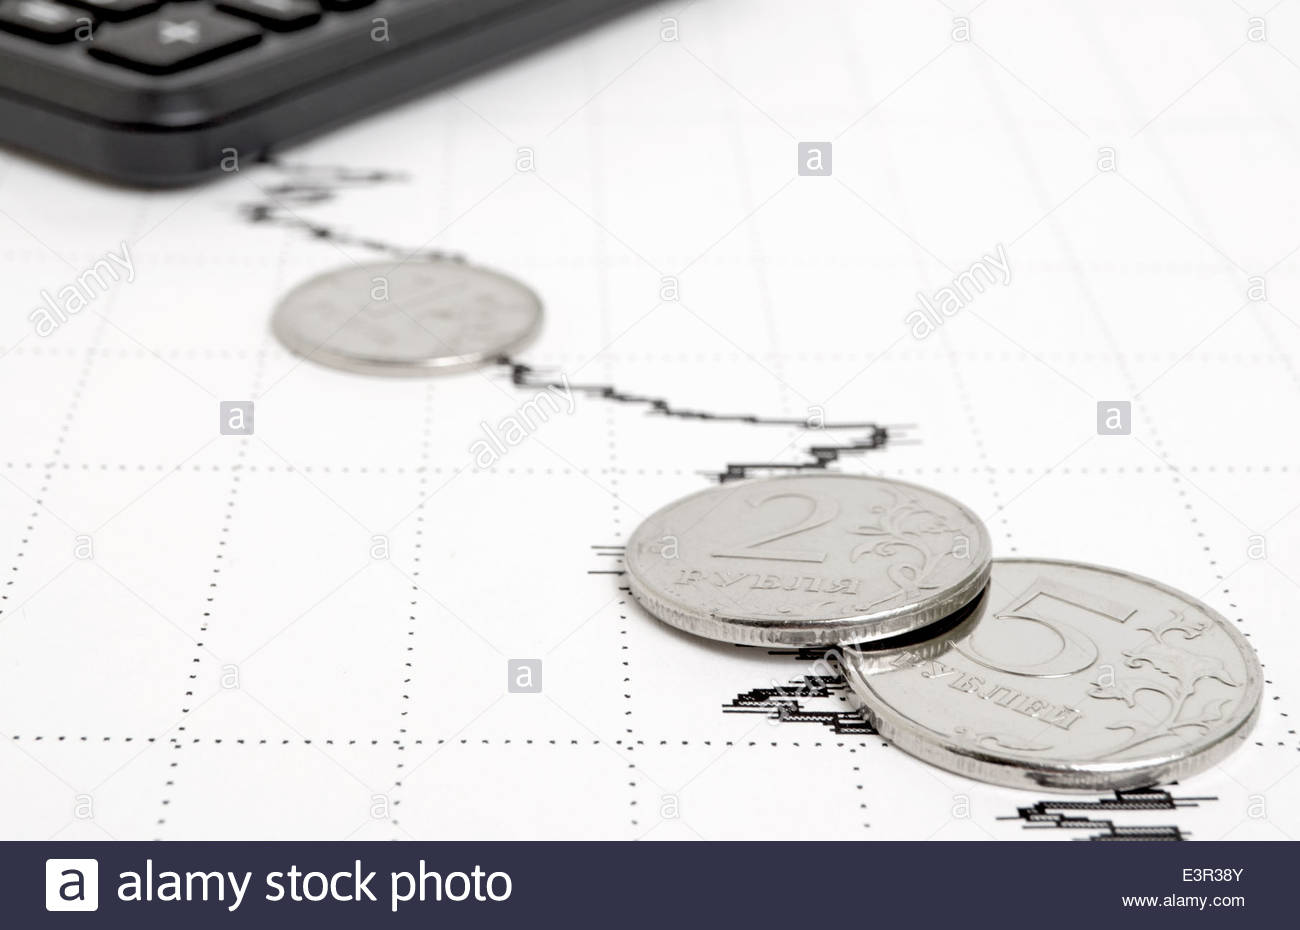 Decline in yield and general condition of the economy. - Stock Image